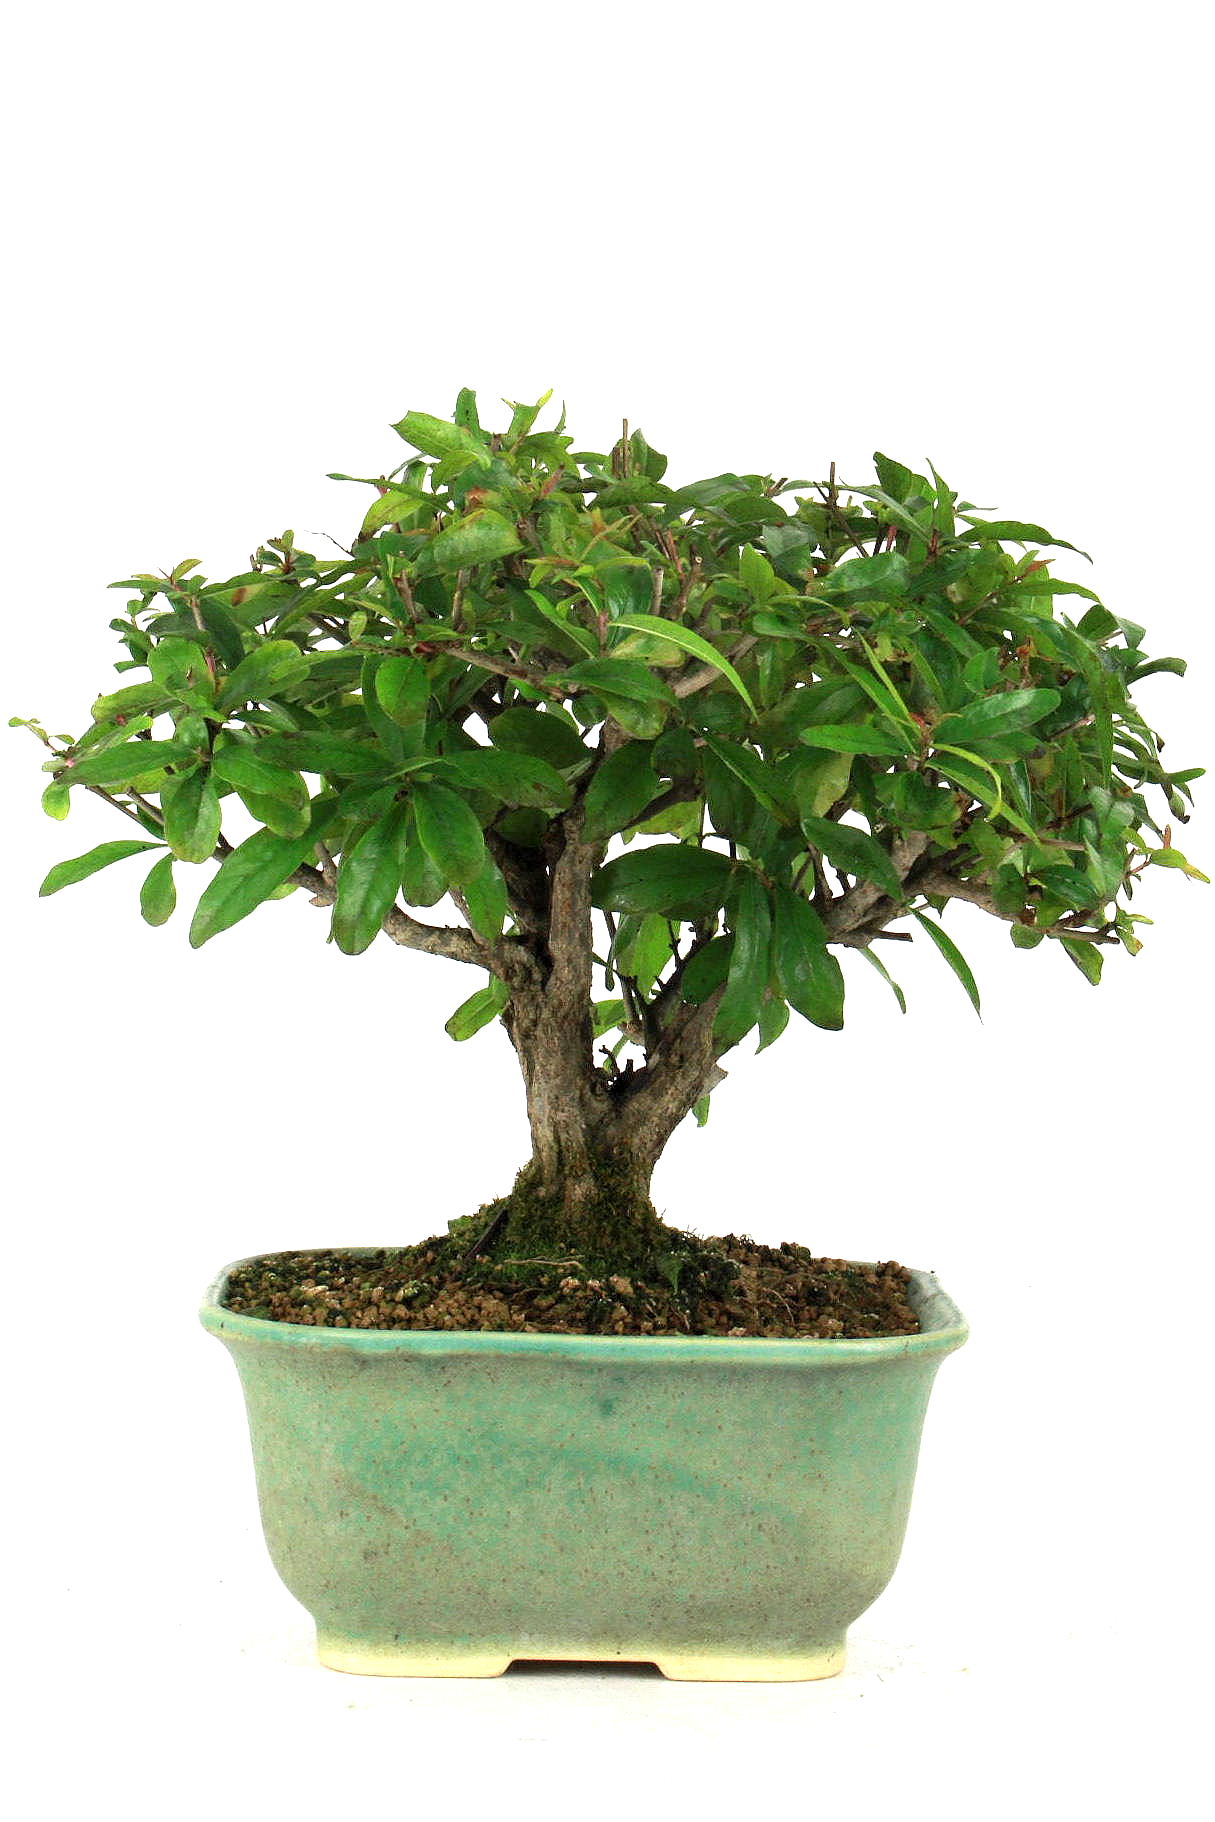 Granatapfel bersicht onlineshop oyaki bonsai for Bonsai onlineshop